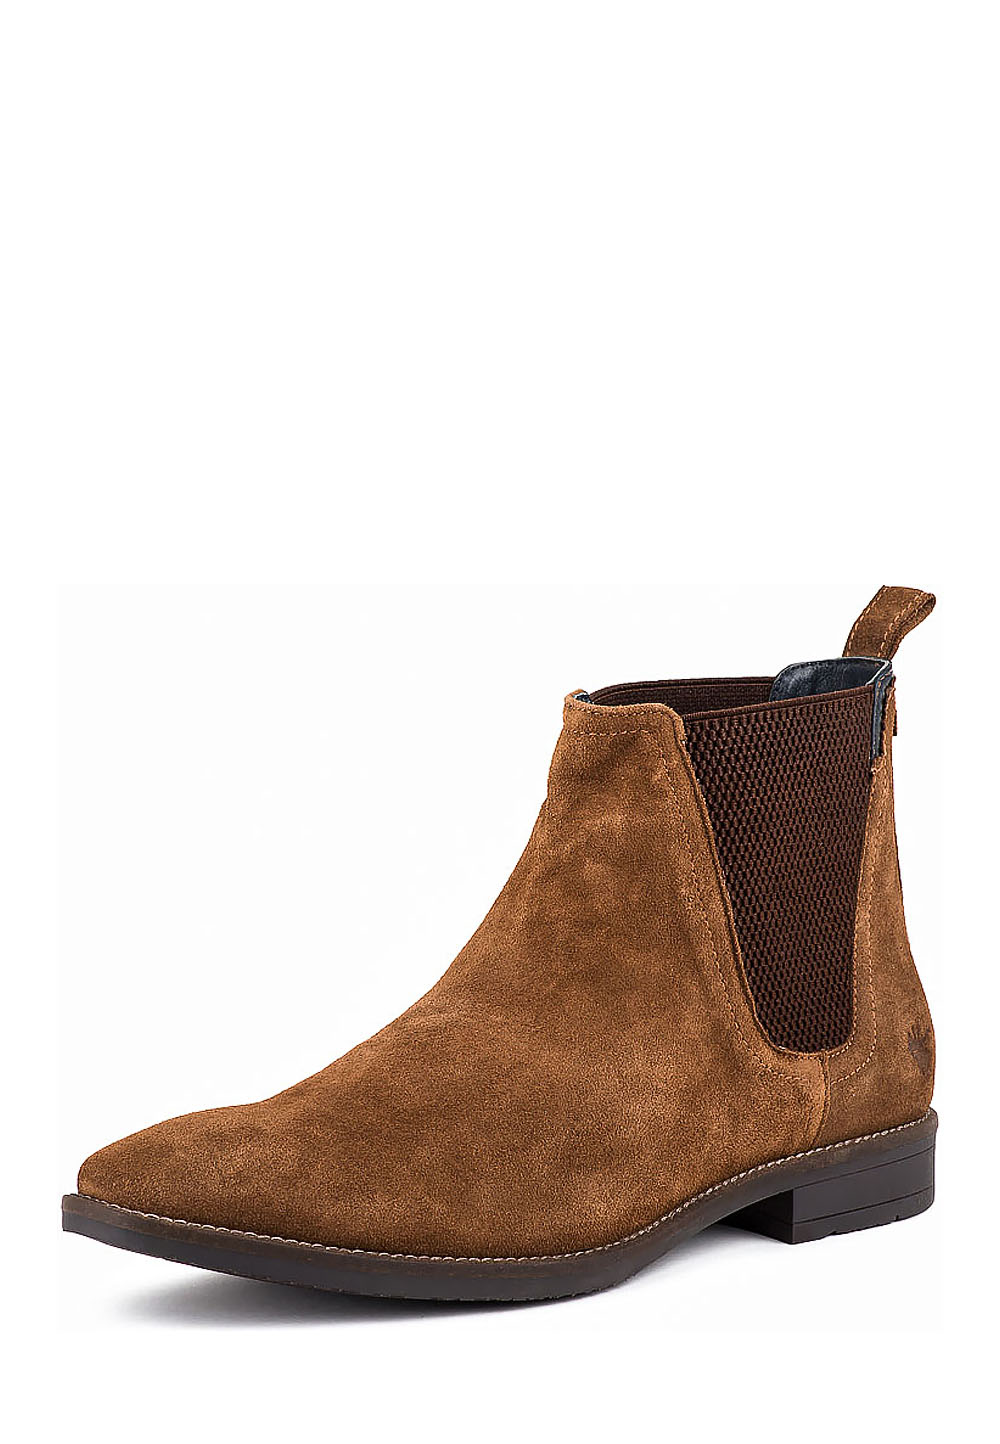 Goodwin Smith Chelsea-Boots Finchley, Leder, brau braun | Schuhe > Boots > Chelsea-Boots | Braun | Goodwin Smith